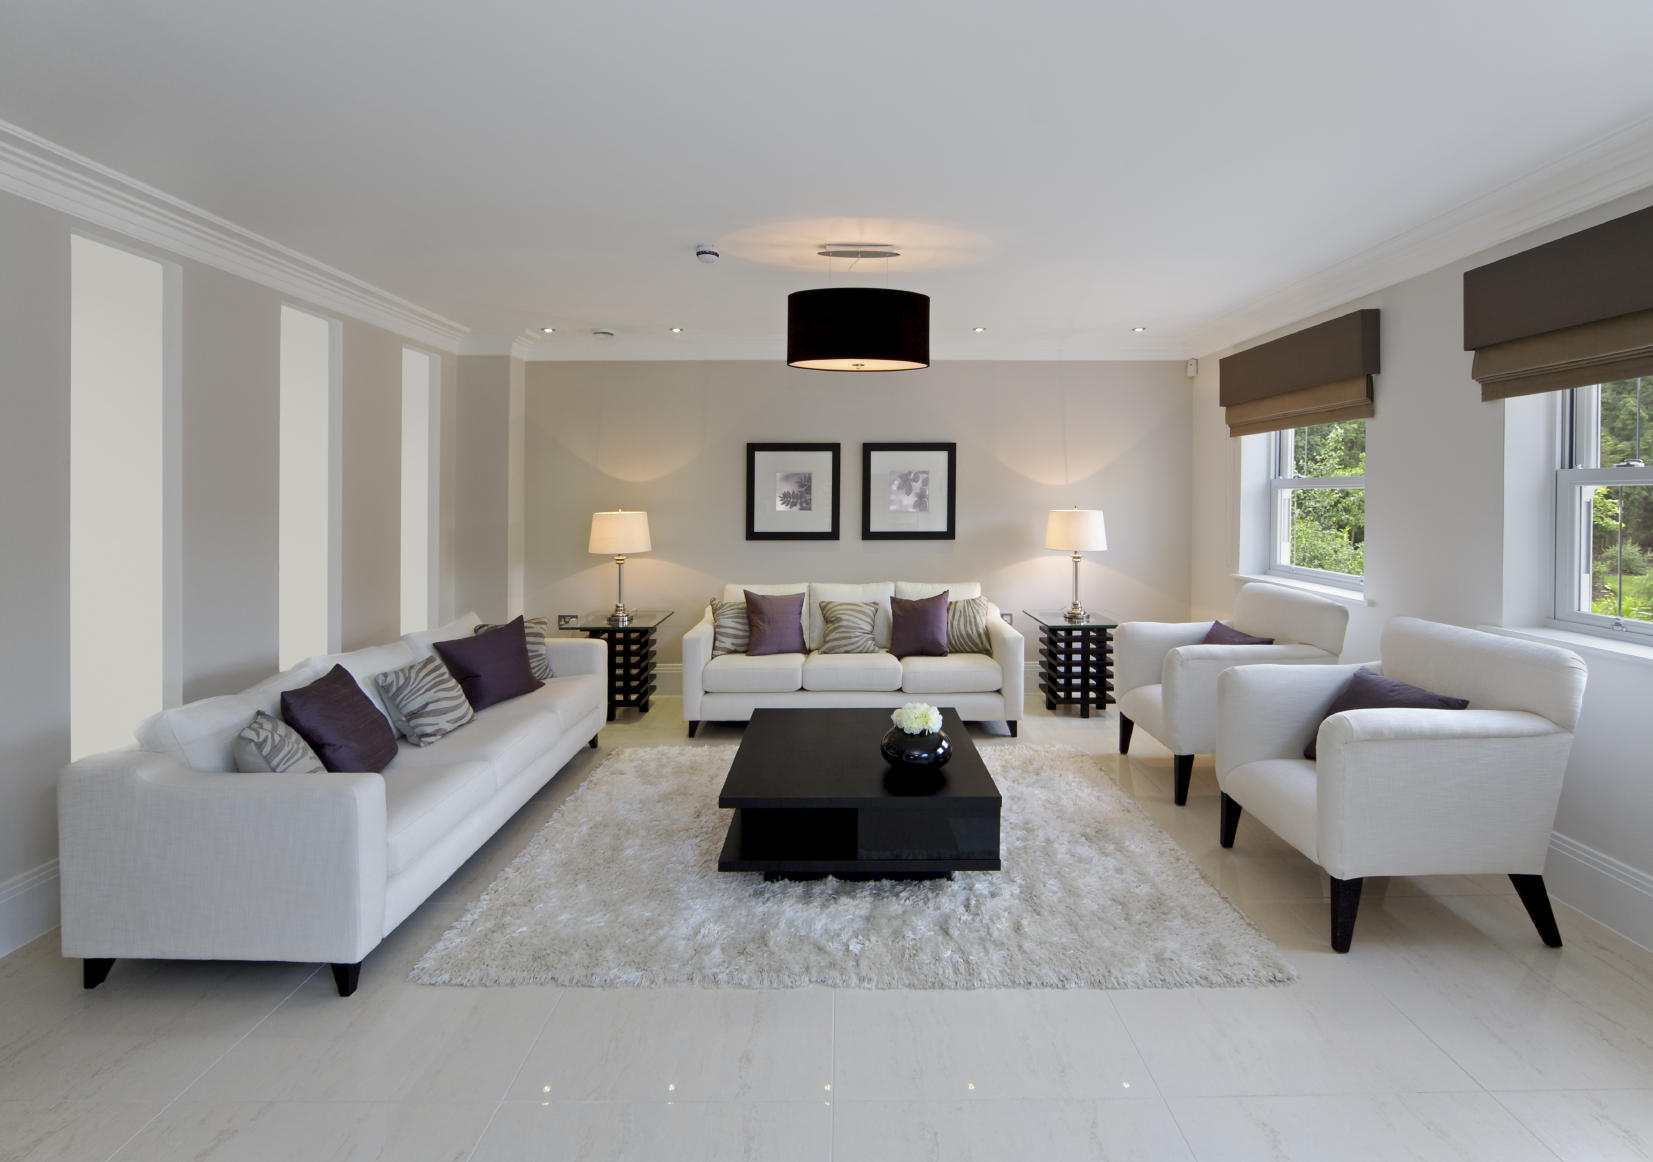 All white living room - All White Living Room Adds High Contrast Via Central Two Tier Jet Black Coffee Table